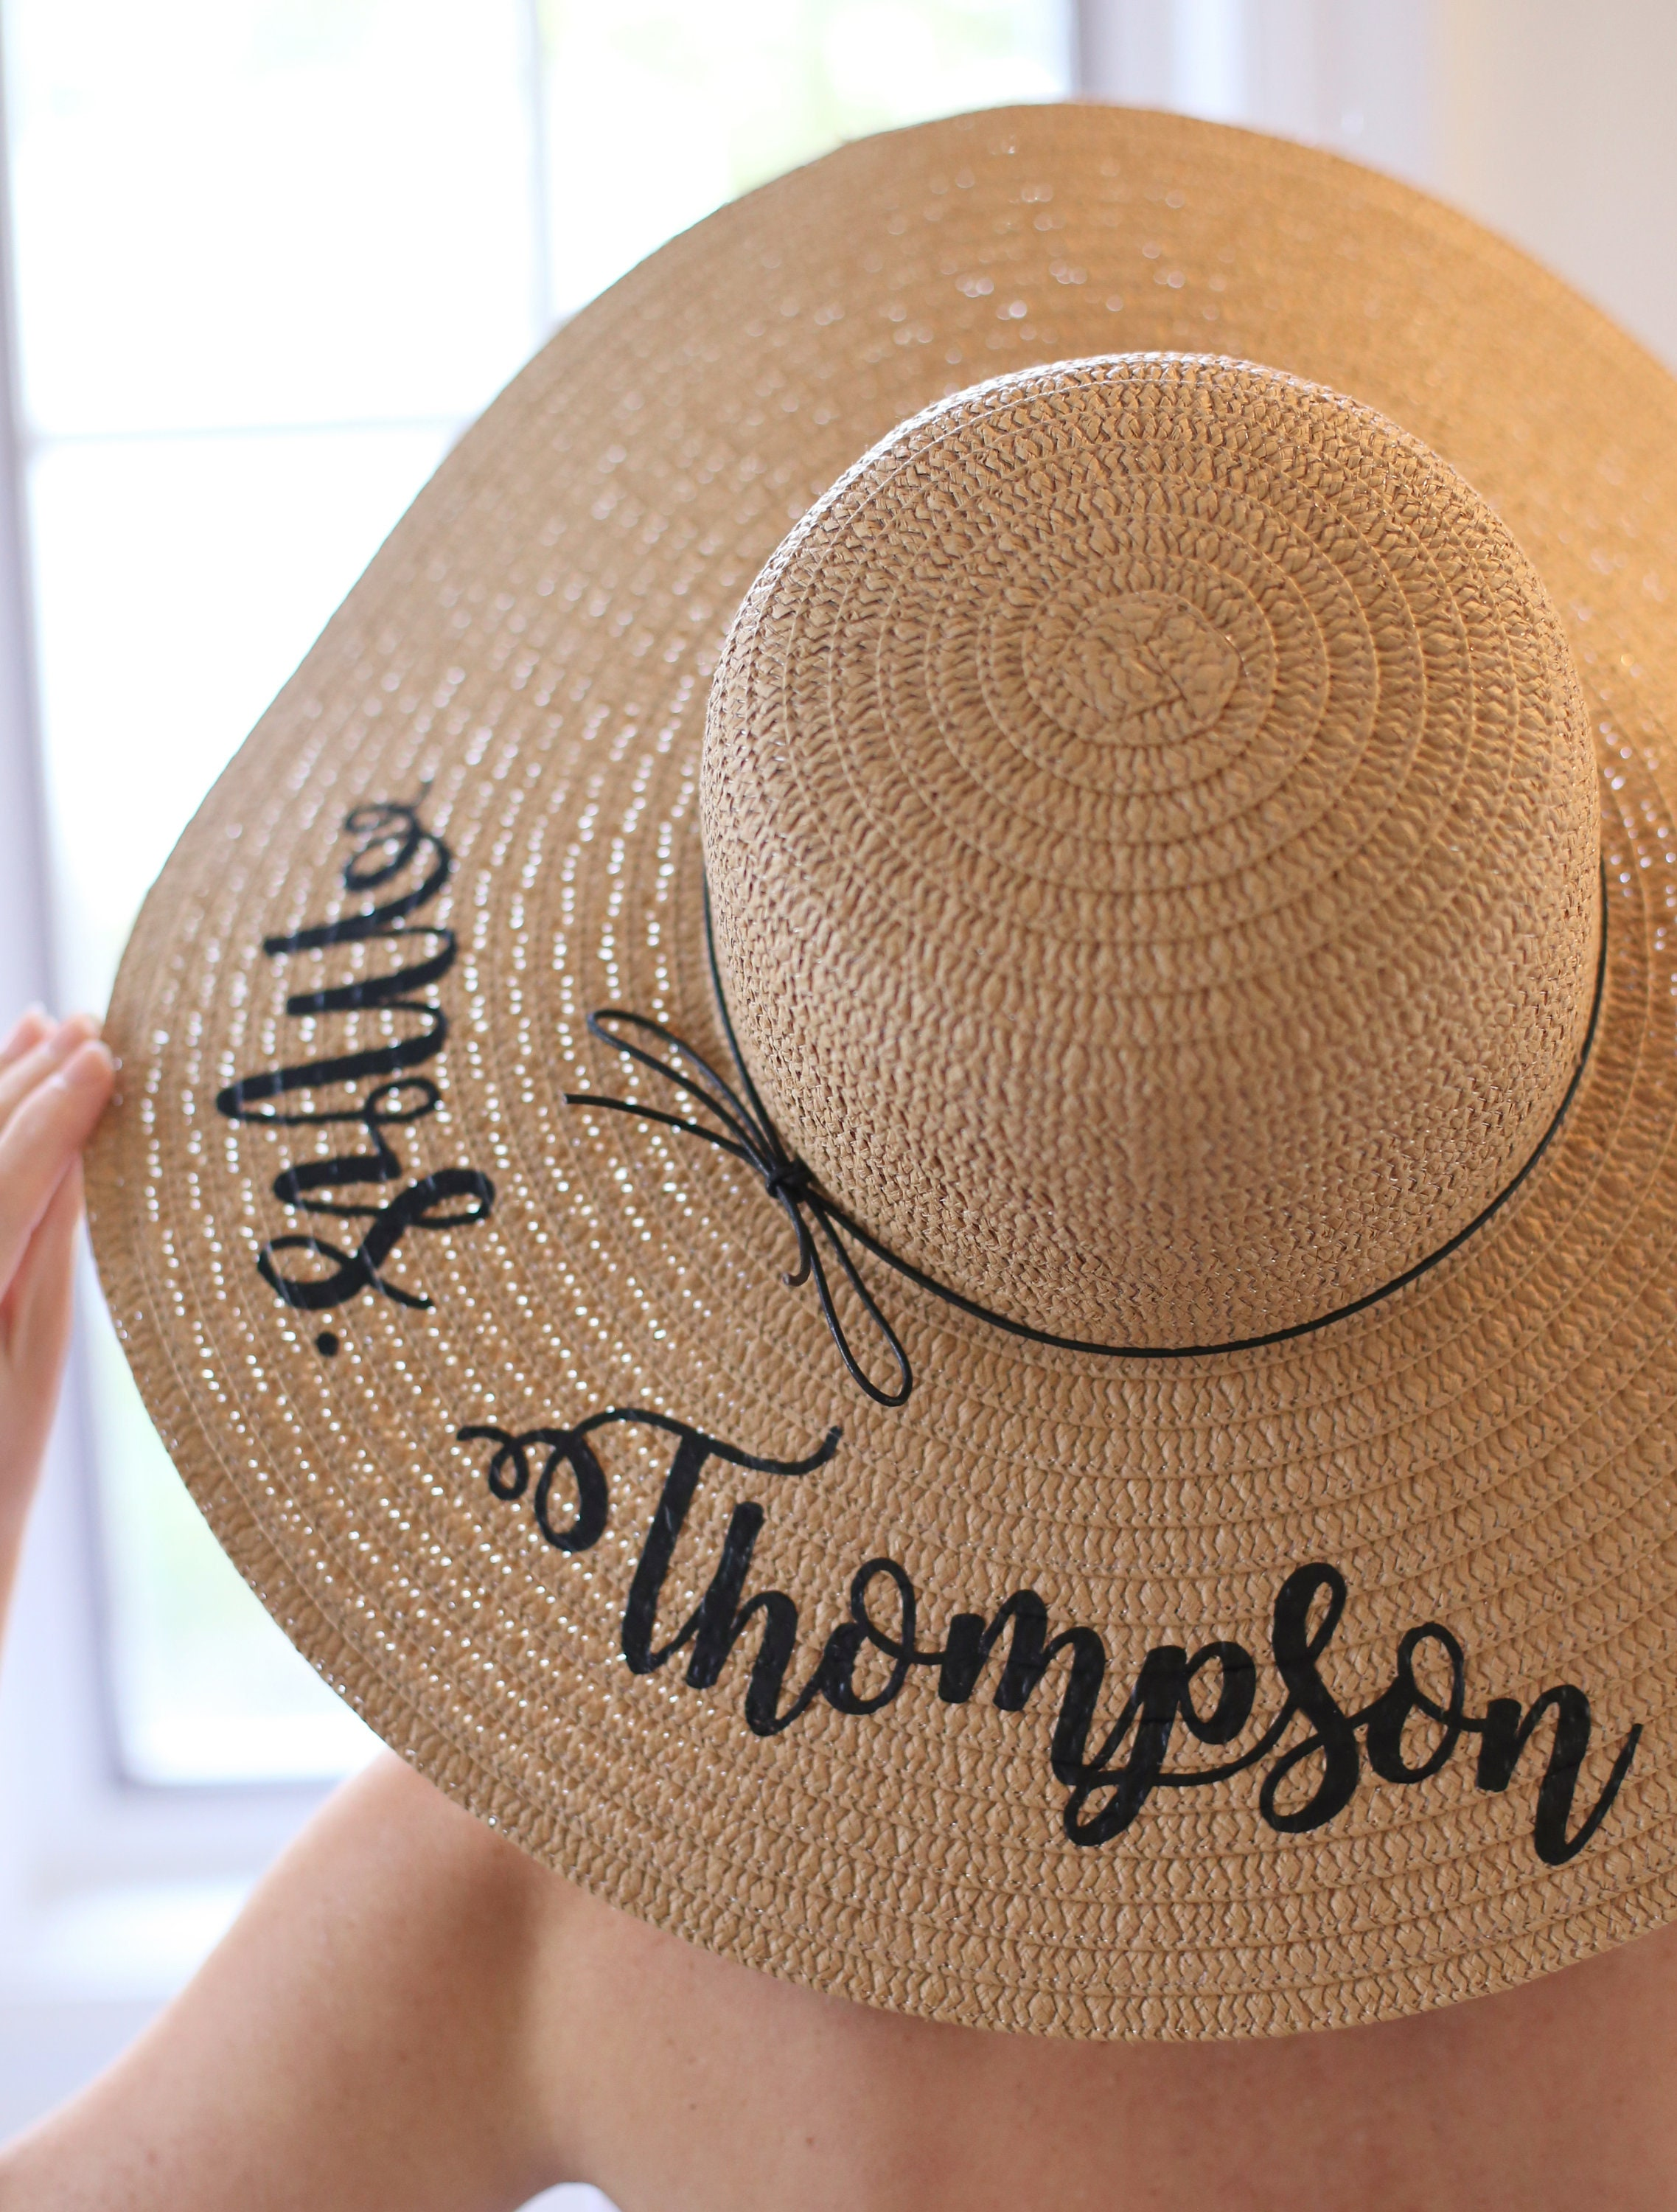 679c931c52f Personalized Bridal Shower Gift Personalized Wedding Gift Personalized  Floppy Hat Personalized Sun Hat Personalized Gift Custom Hat.  20.50 USD